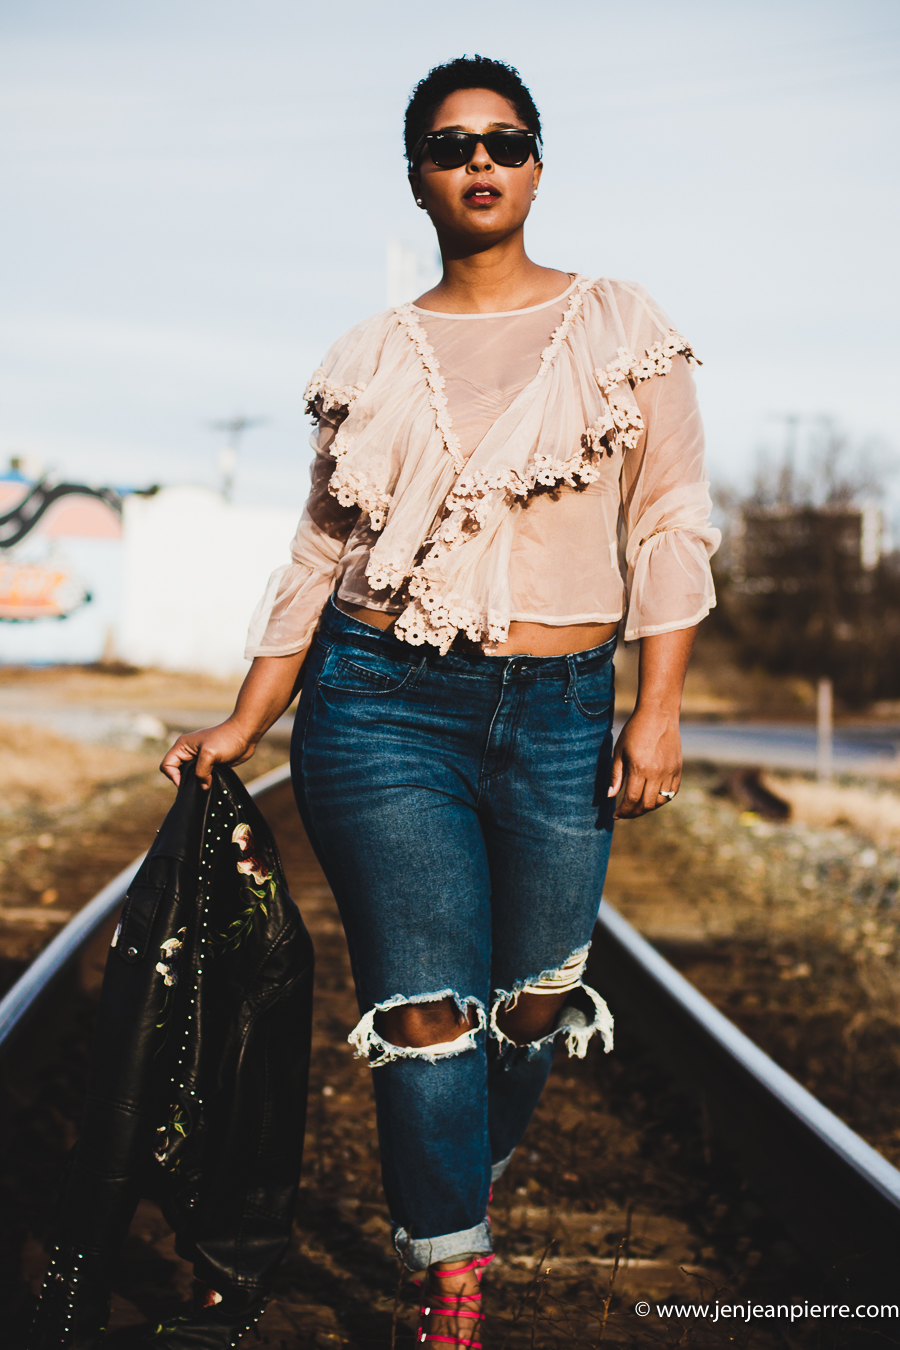 Top DC fashion blogger styling distressed jeans and lace top hot pink heels